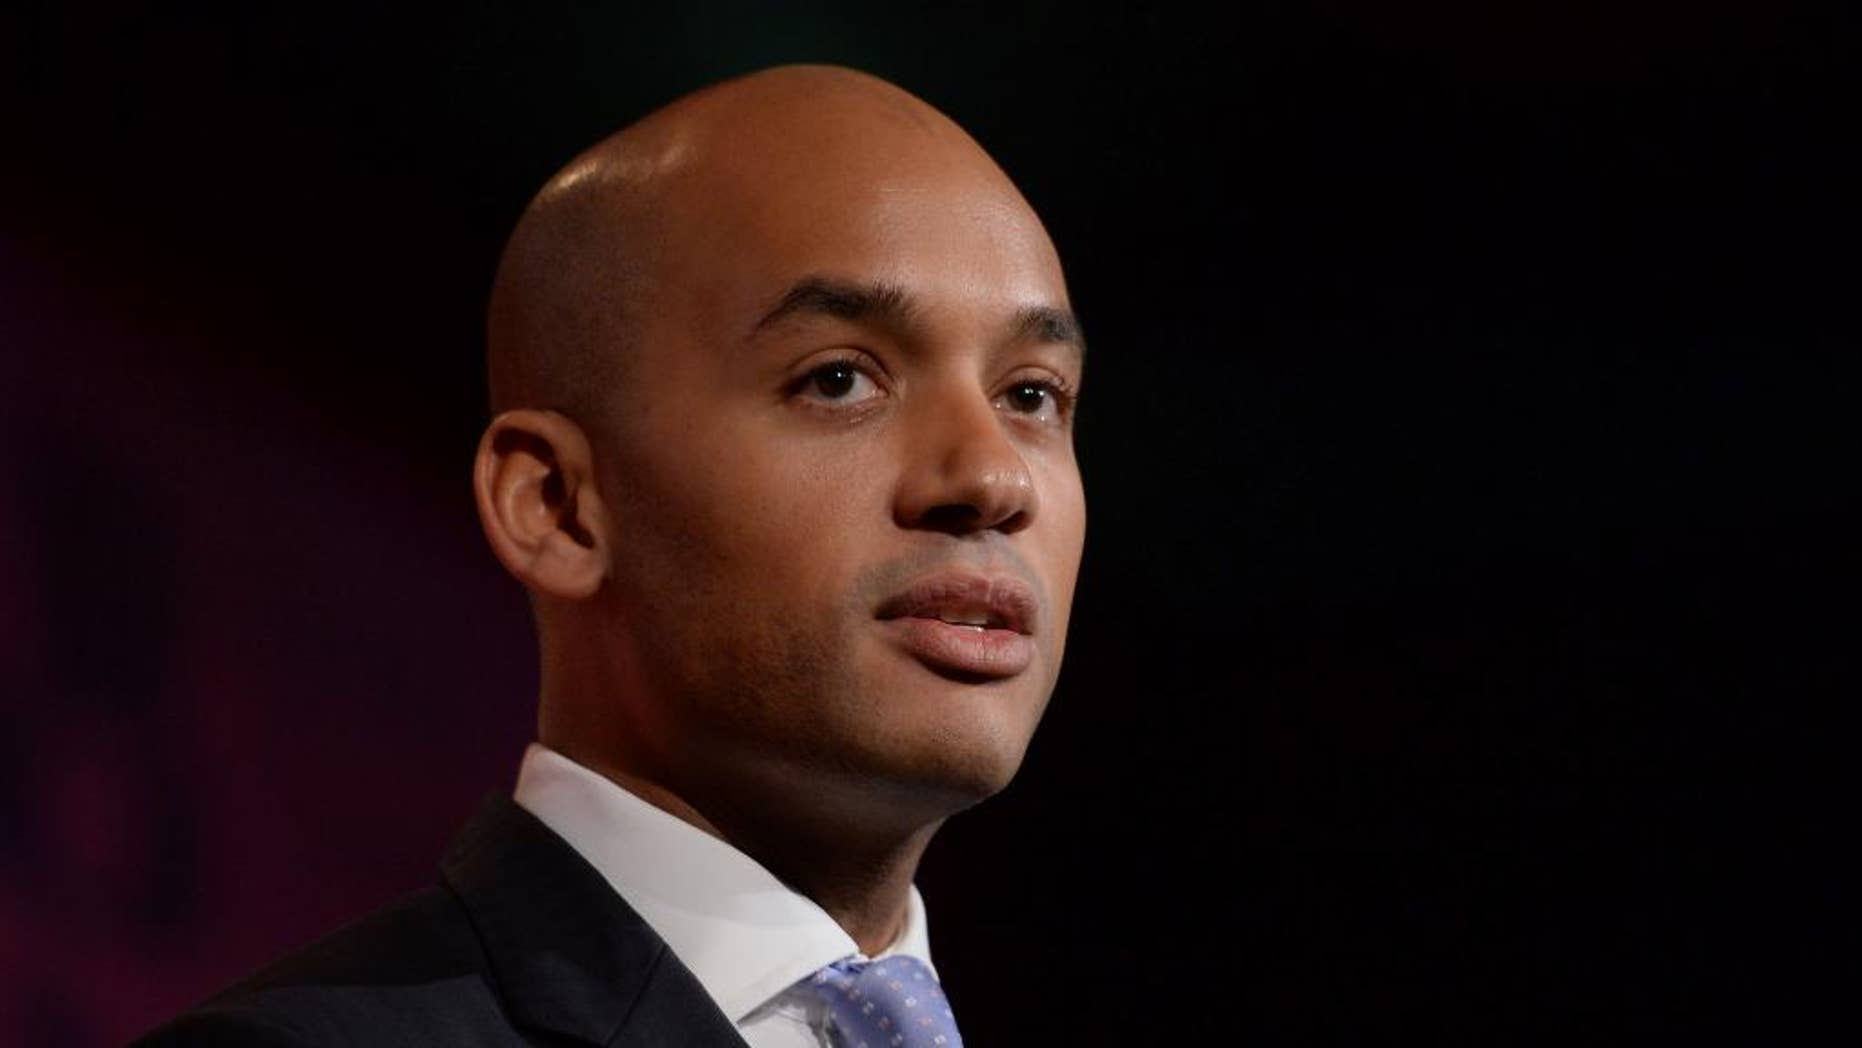 "FILE  - This Tuesday, Feb. 10, 2015 file photo shows Britain's Shadow business secretary Chuka Umunna delivering a speech in London. An up-and-coming British politician who was considered a front-runner to replace Labour leader Ed Miliband abruptly withdrew from the contest Friday, May 15, 2015, saying he had underestimated the intense scrutiny to which he would be subjected. Chuka Umunna, who announced his leadership bid just three days ago, blamed the ""added level of pressure that comes with being a leadership candidate."" (Anthony Devlin/Pa via AP, file)    UNITED KINGDOM OUT     -    NO SALES     -     NO ARCHIVES"